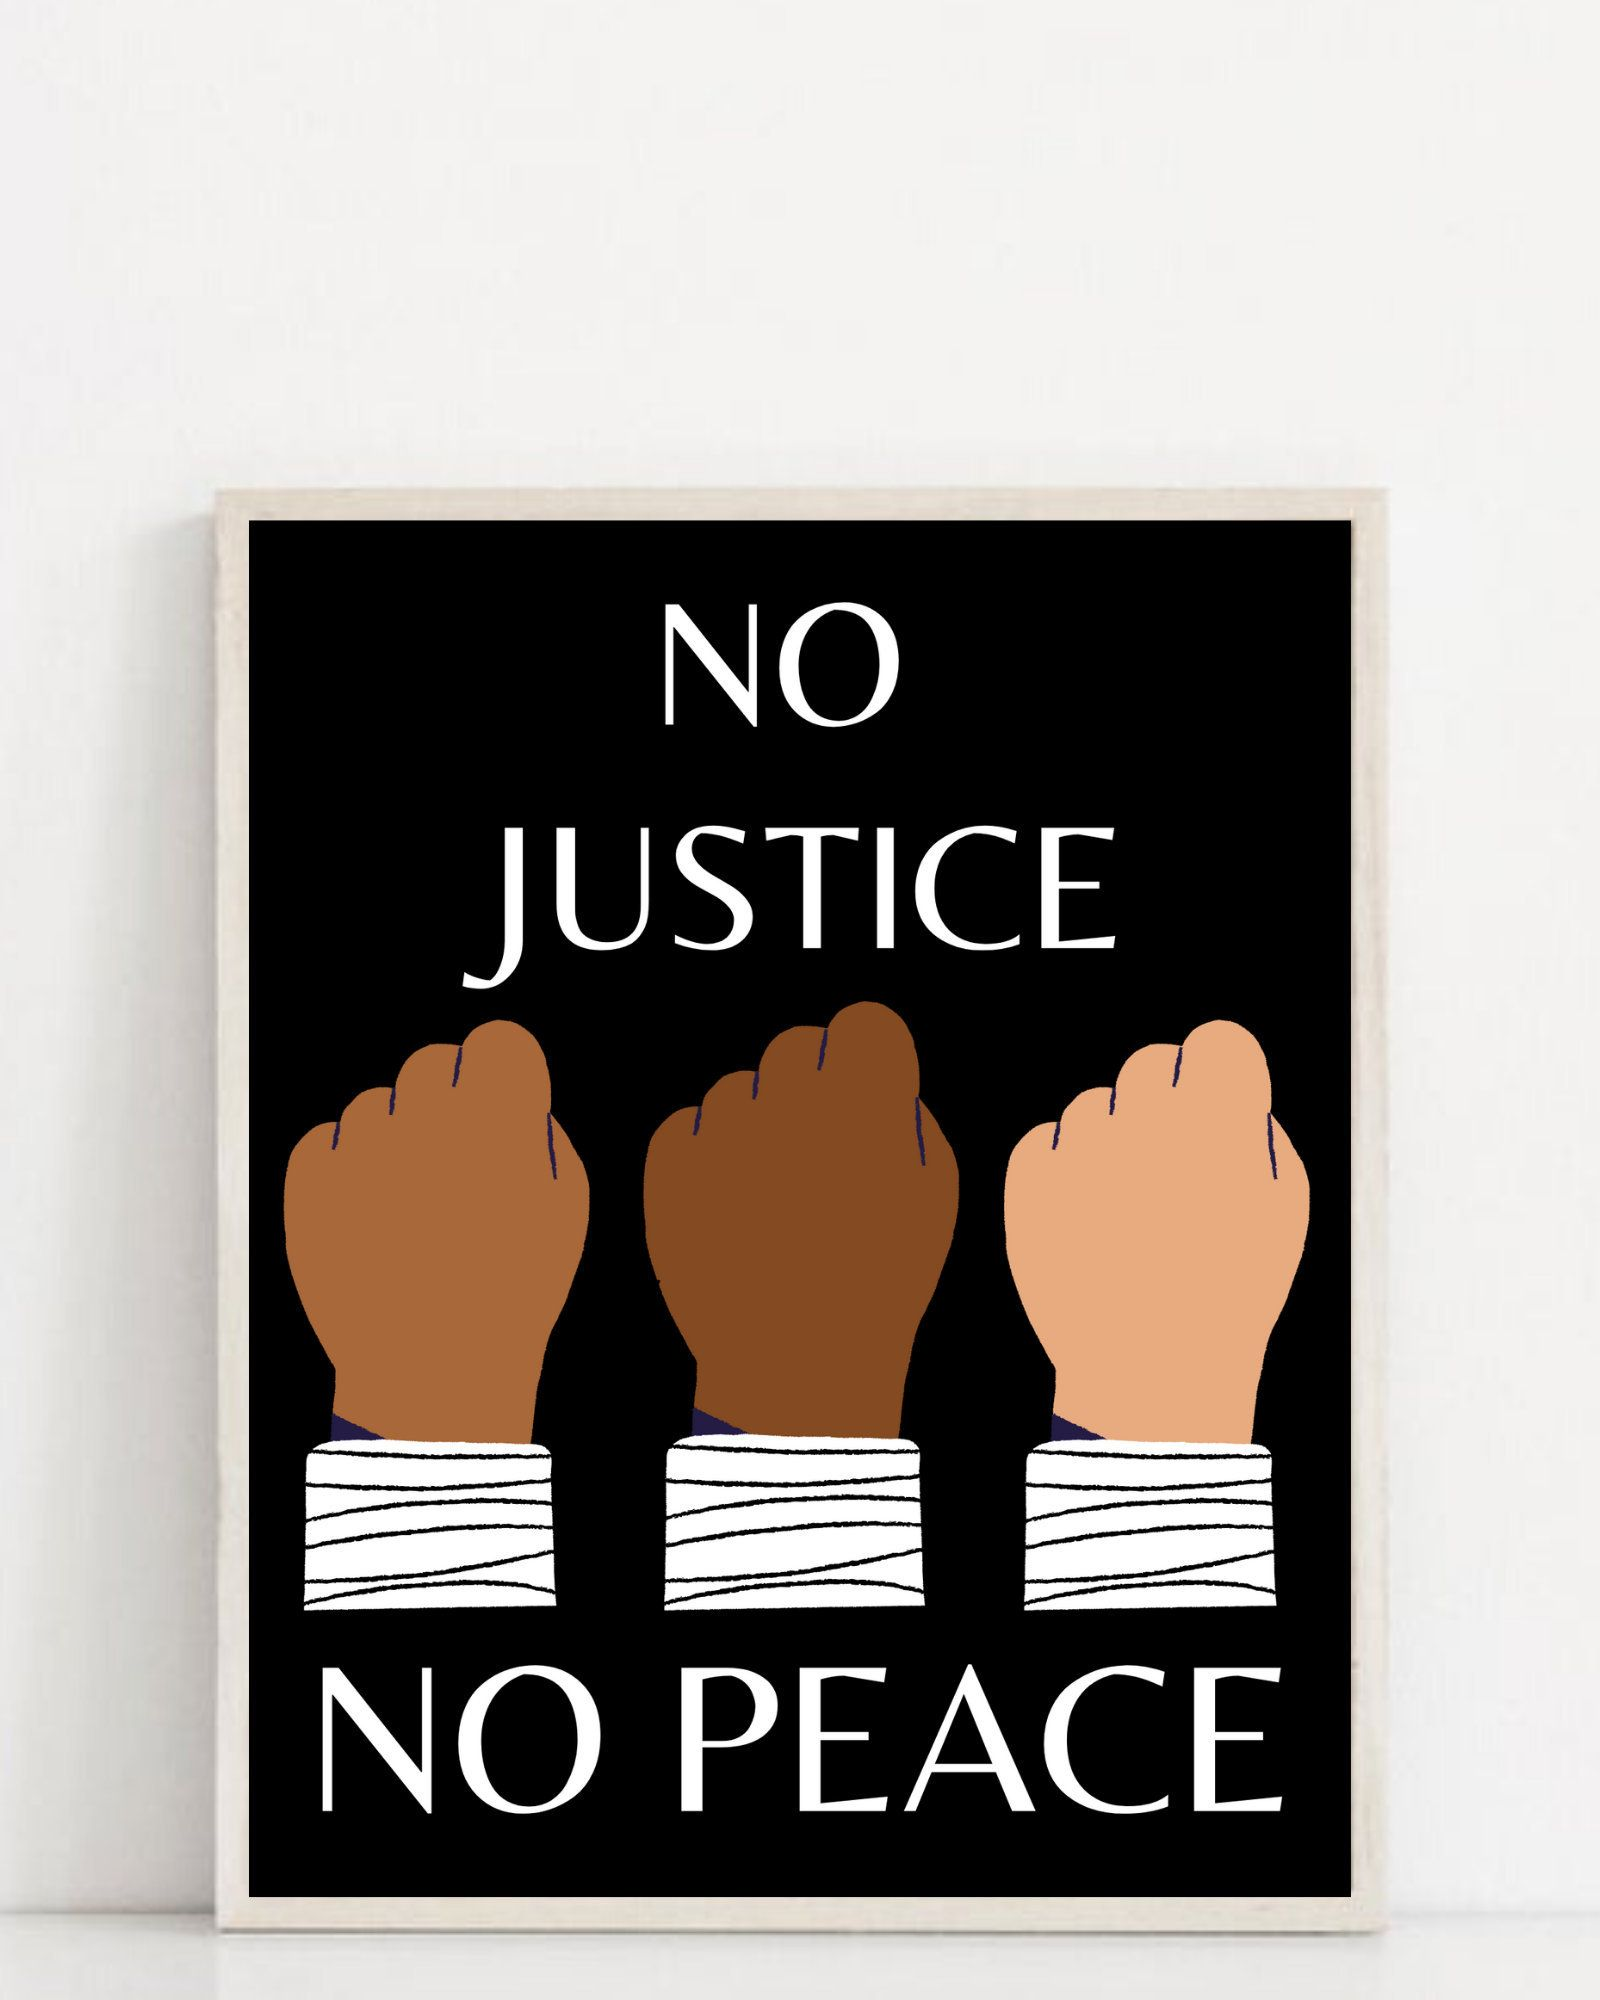 No Justice No Peace Protest Poster Black Lives Matter Protest Sign Blm Justice For Black Lives Justice For George Floyd Breonna Taylor Protest Posters Black Lives Matter Protest Black Lives Matter